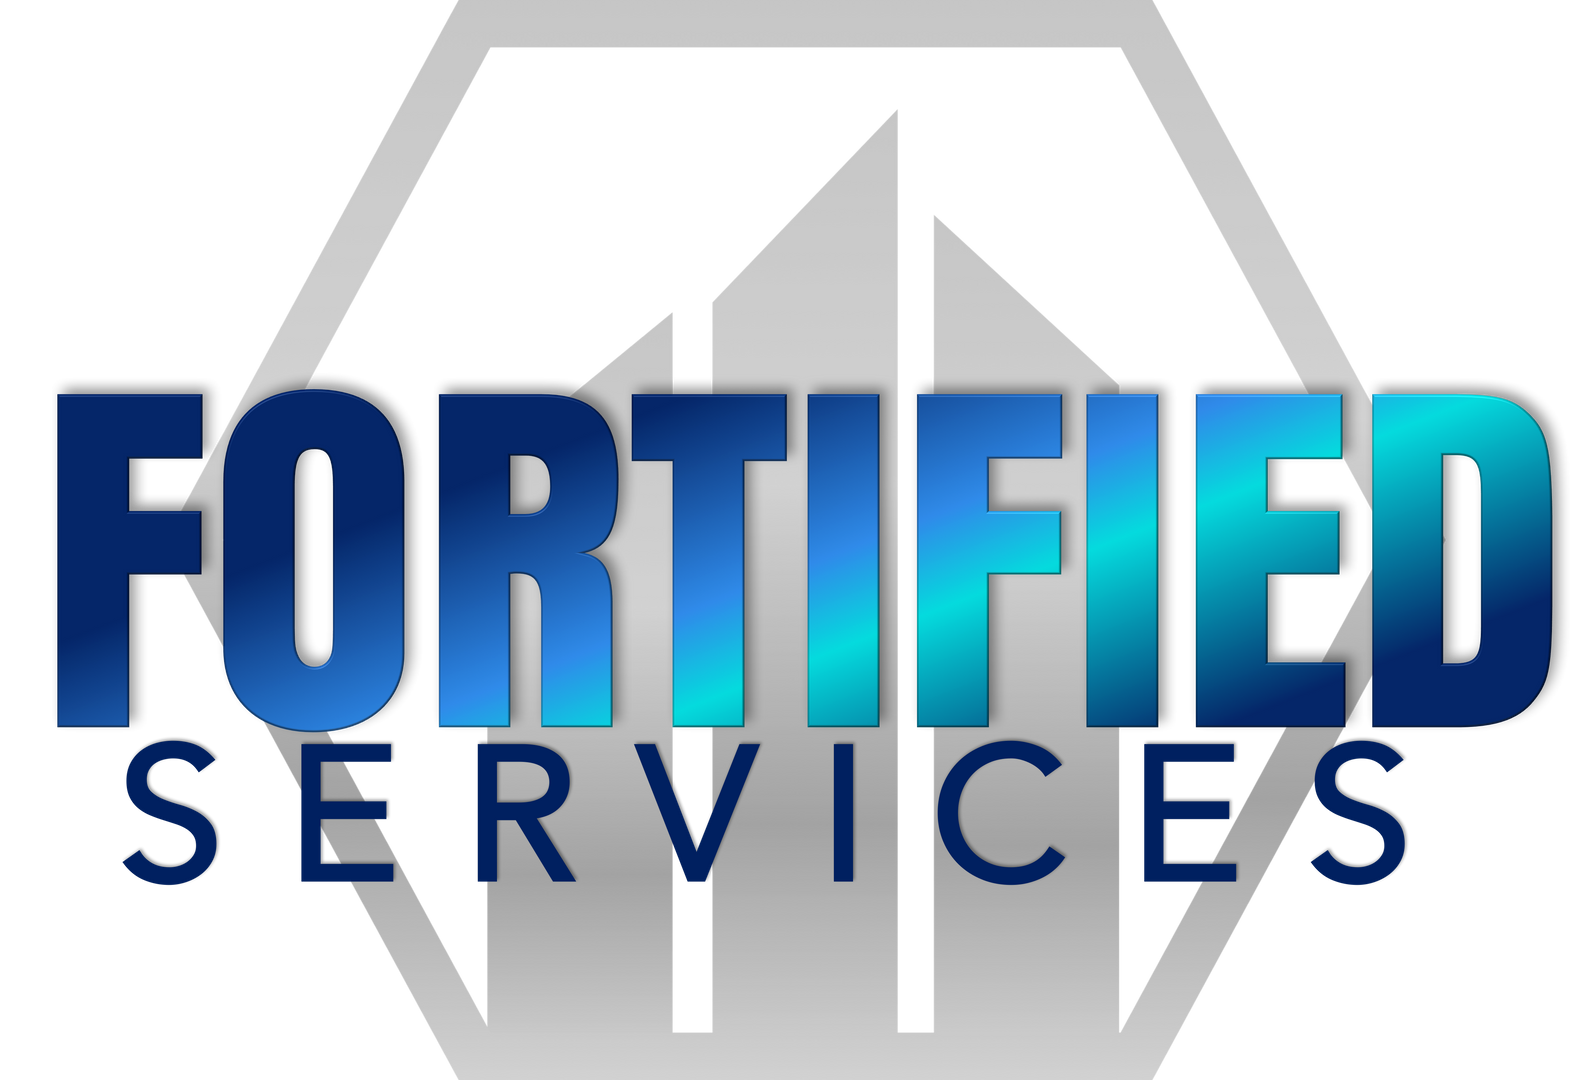 Fortified Services